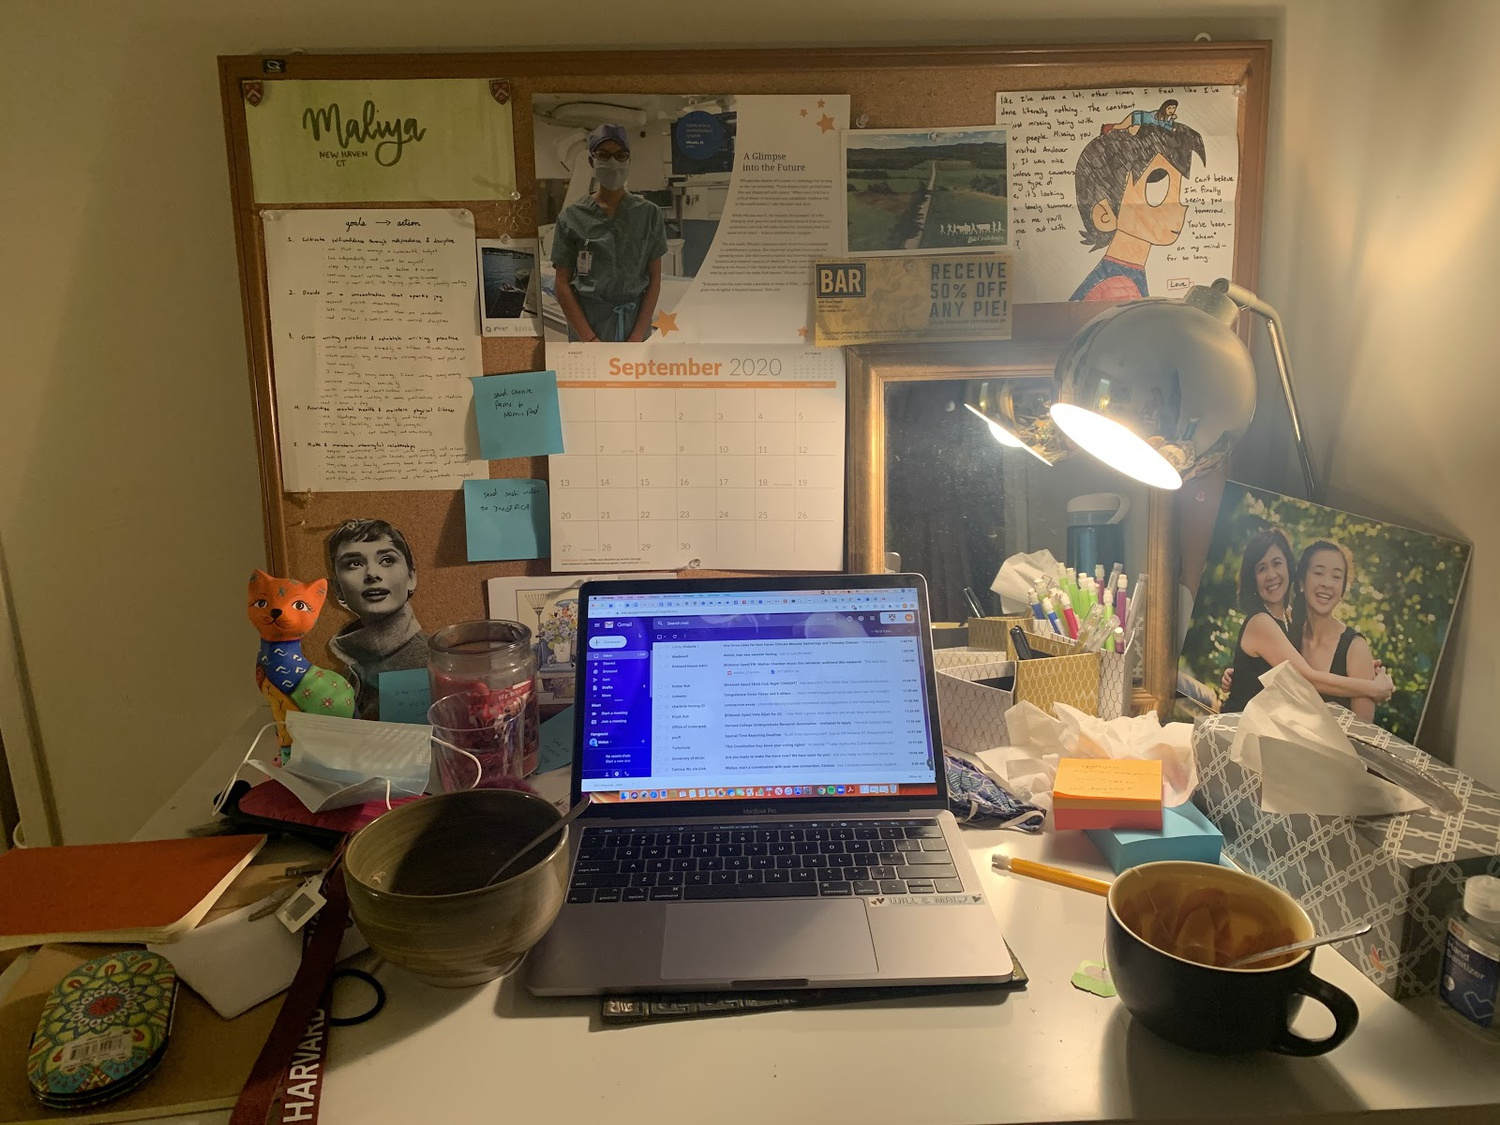 I recently moved into a new apartment, so my desk is much smaller. Like my life right now, it''s a little chaotic, but I'm making it work!